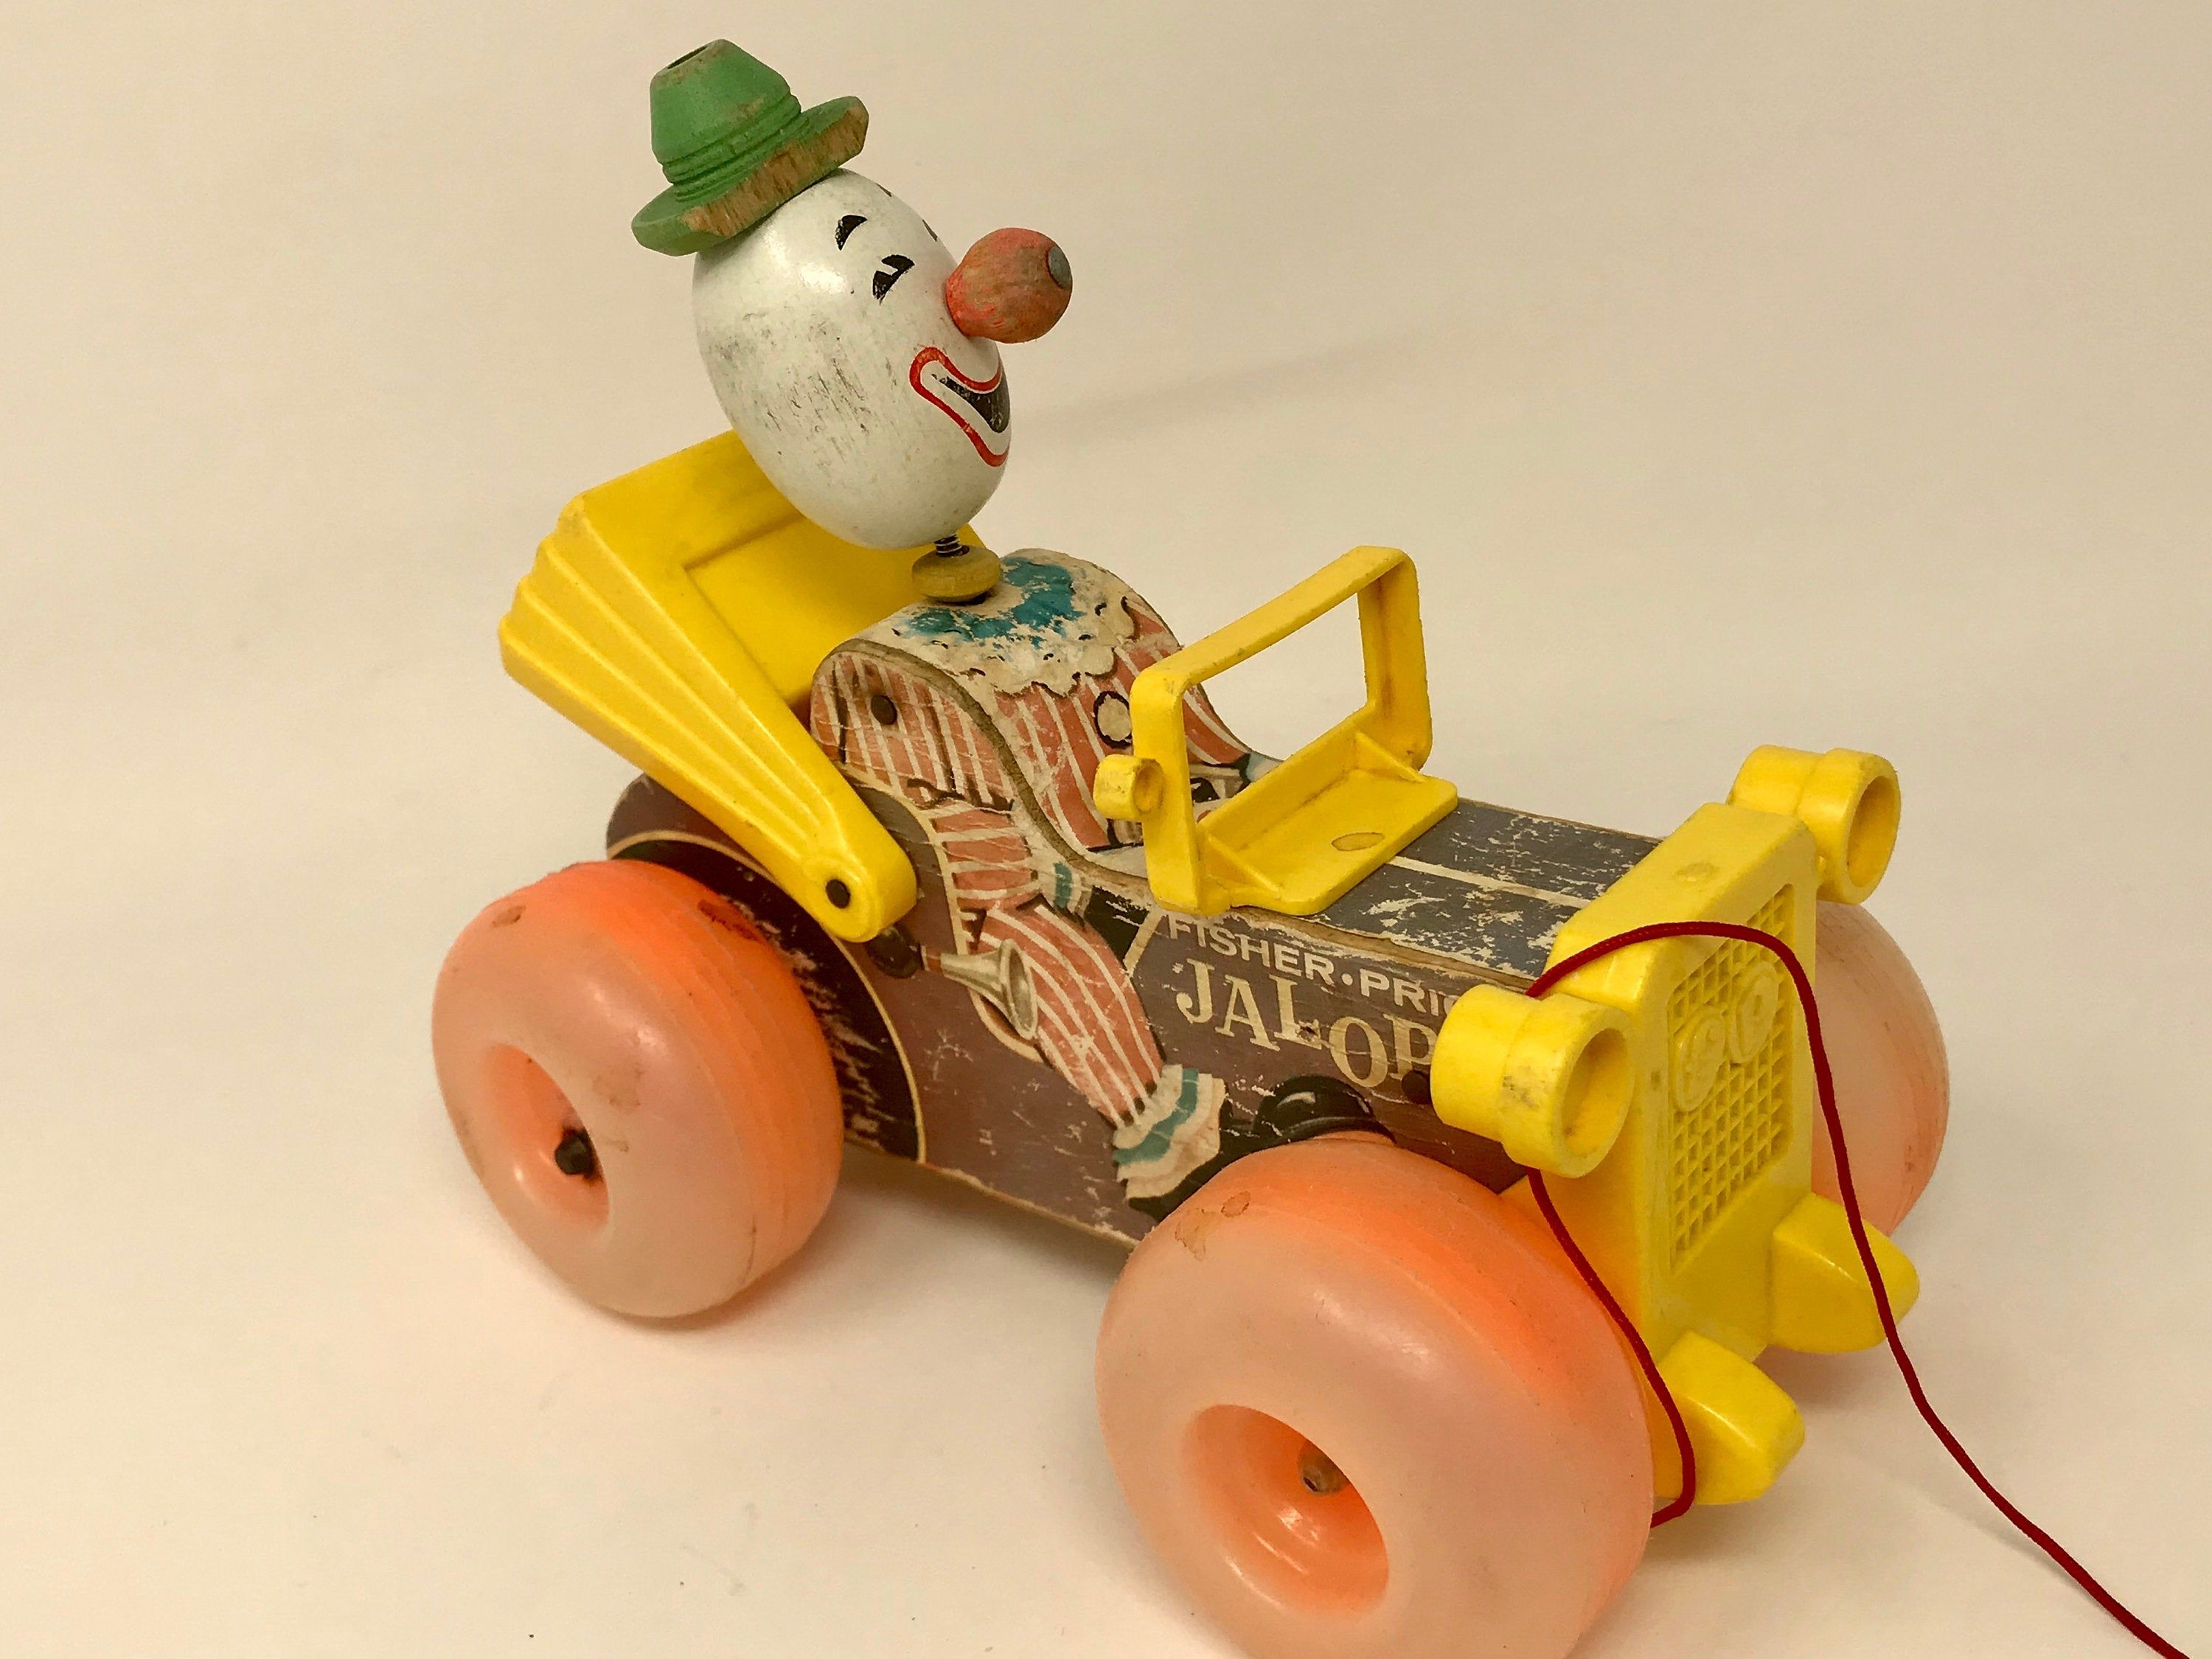 Vintage Fisher Price Jalopy Pull Toy Clown Etsy Vintage Fisher Price Fisher Price Toys Pull Toy